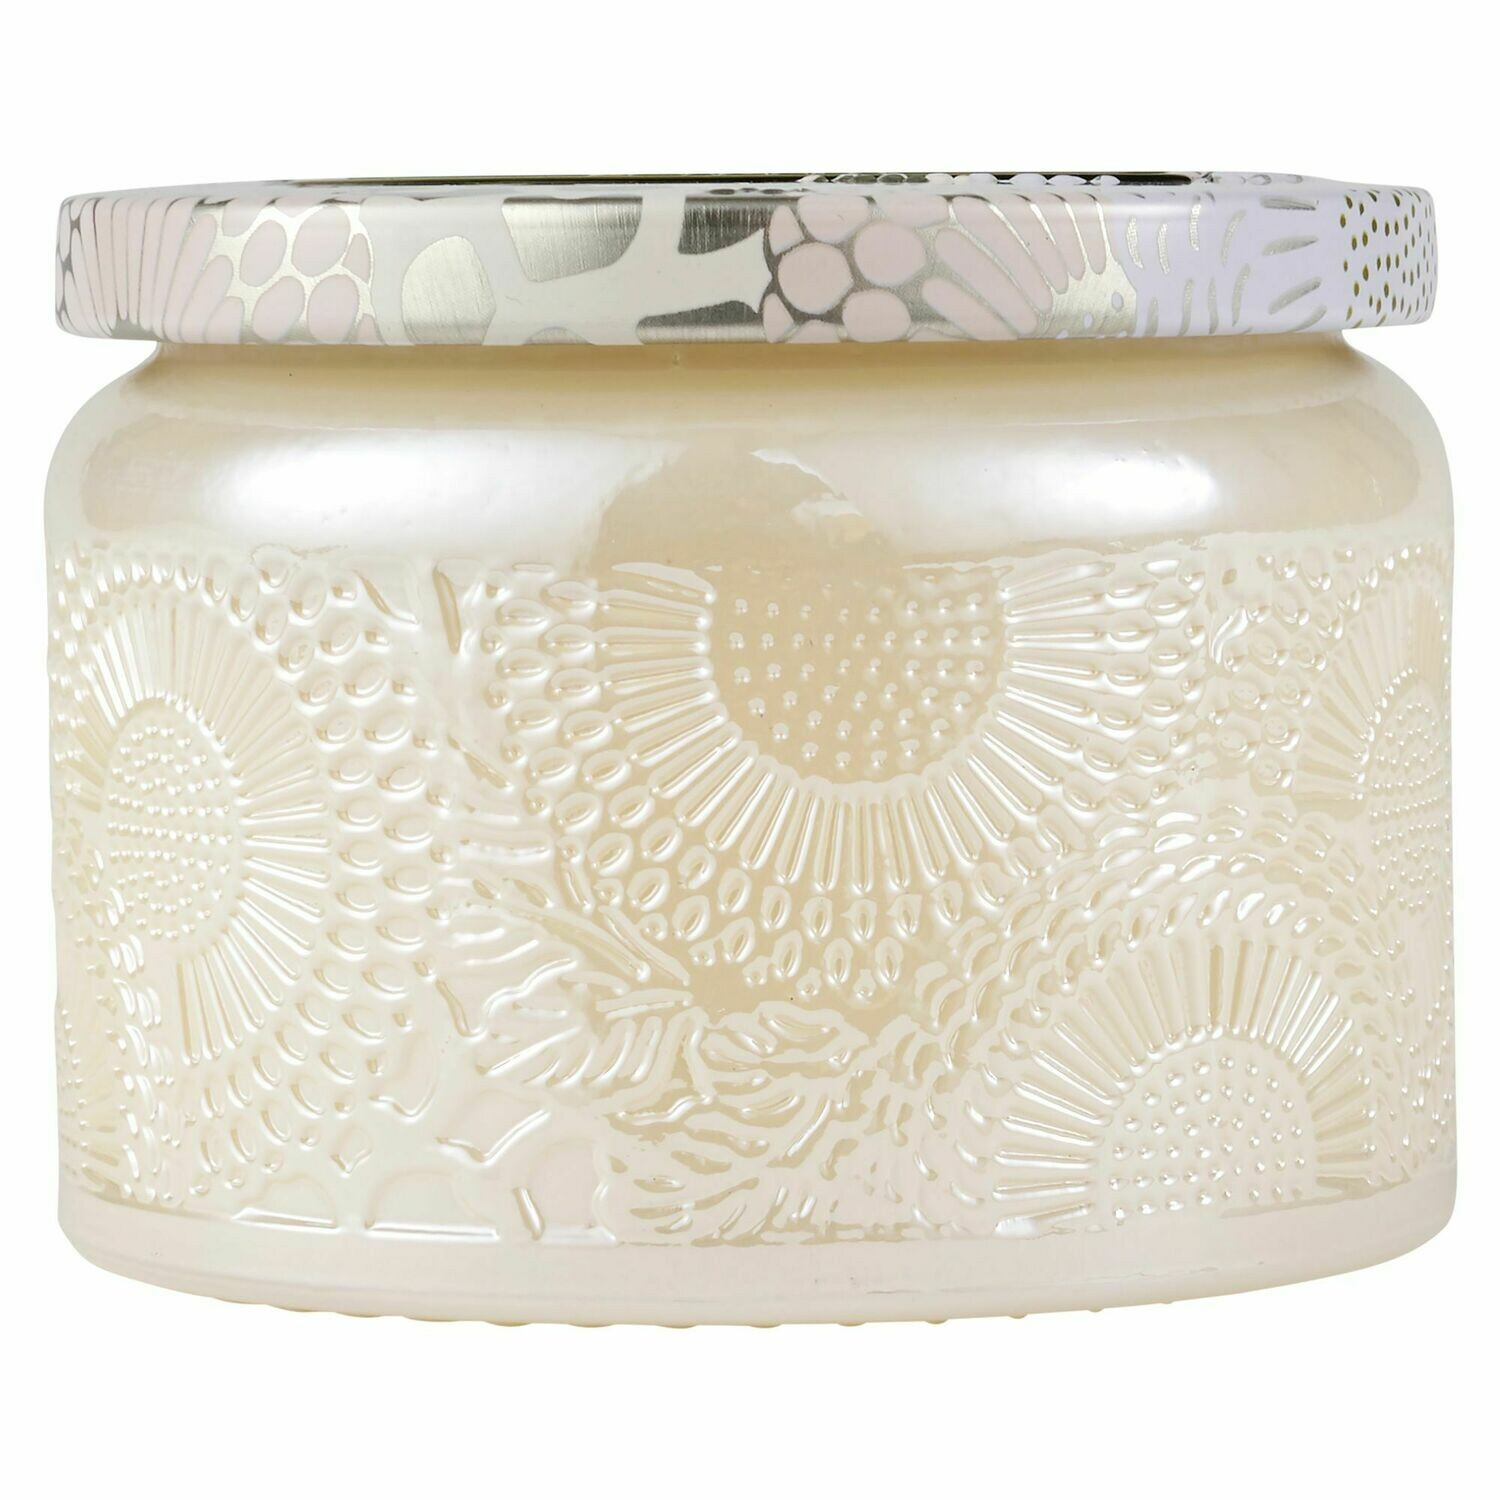 Santal Vanille Candle - Voluspa Petite Jar Candle